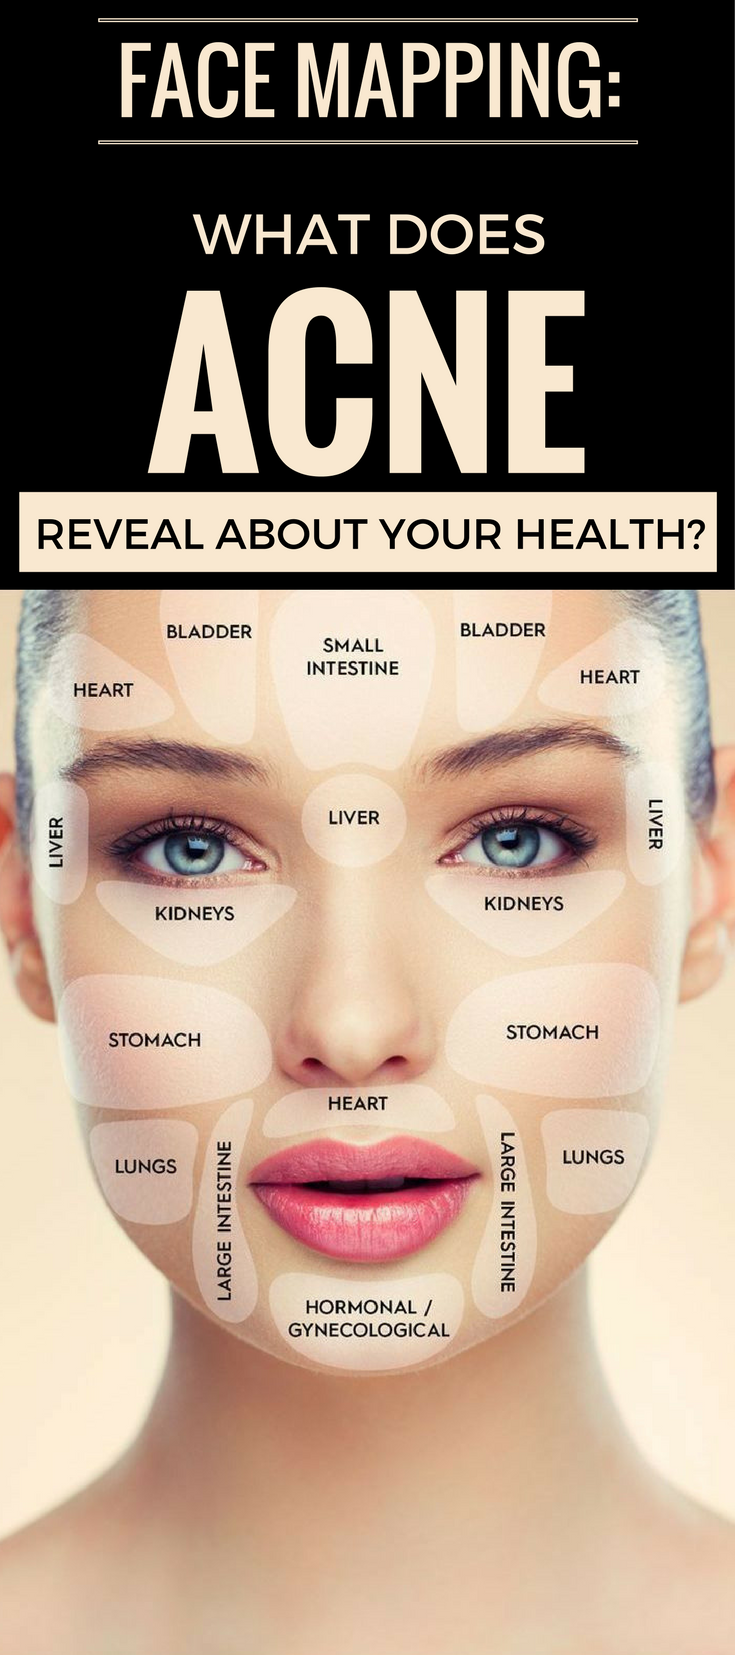 Face Mapping Spots Face Mapping: What Does Acne Reveal About Your Health | Important